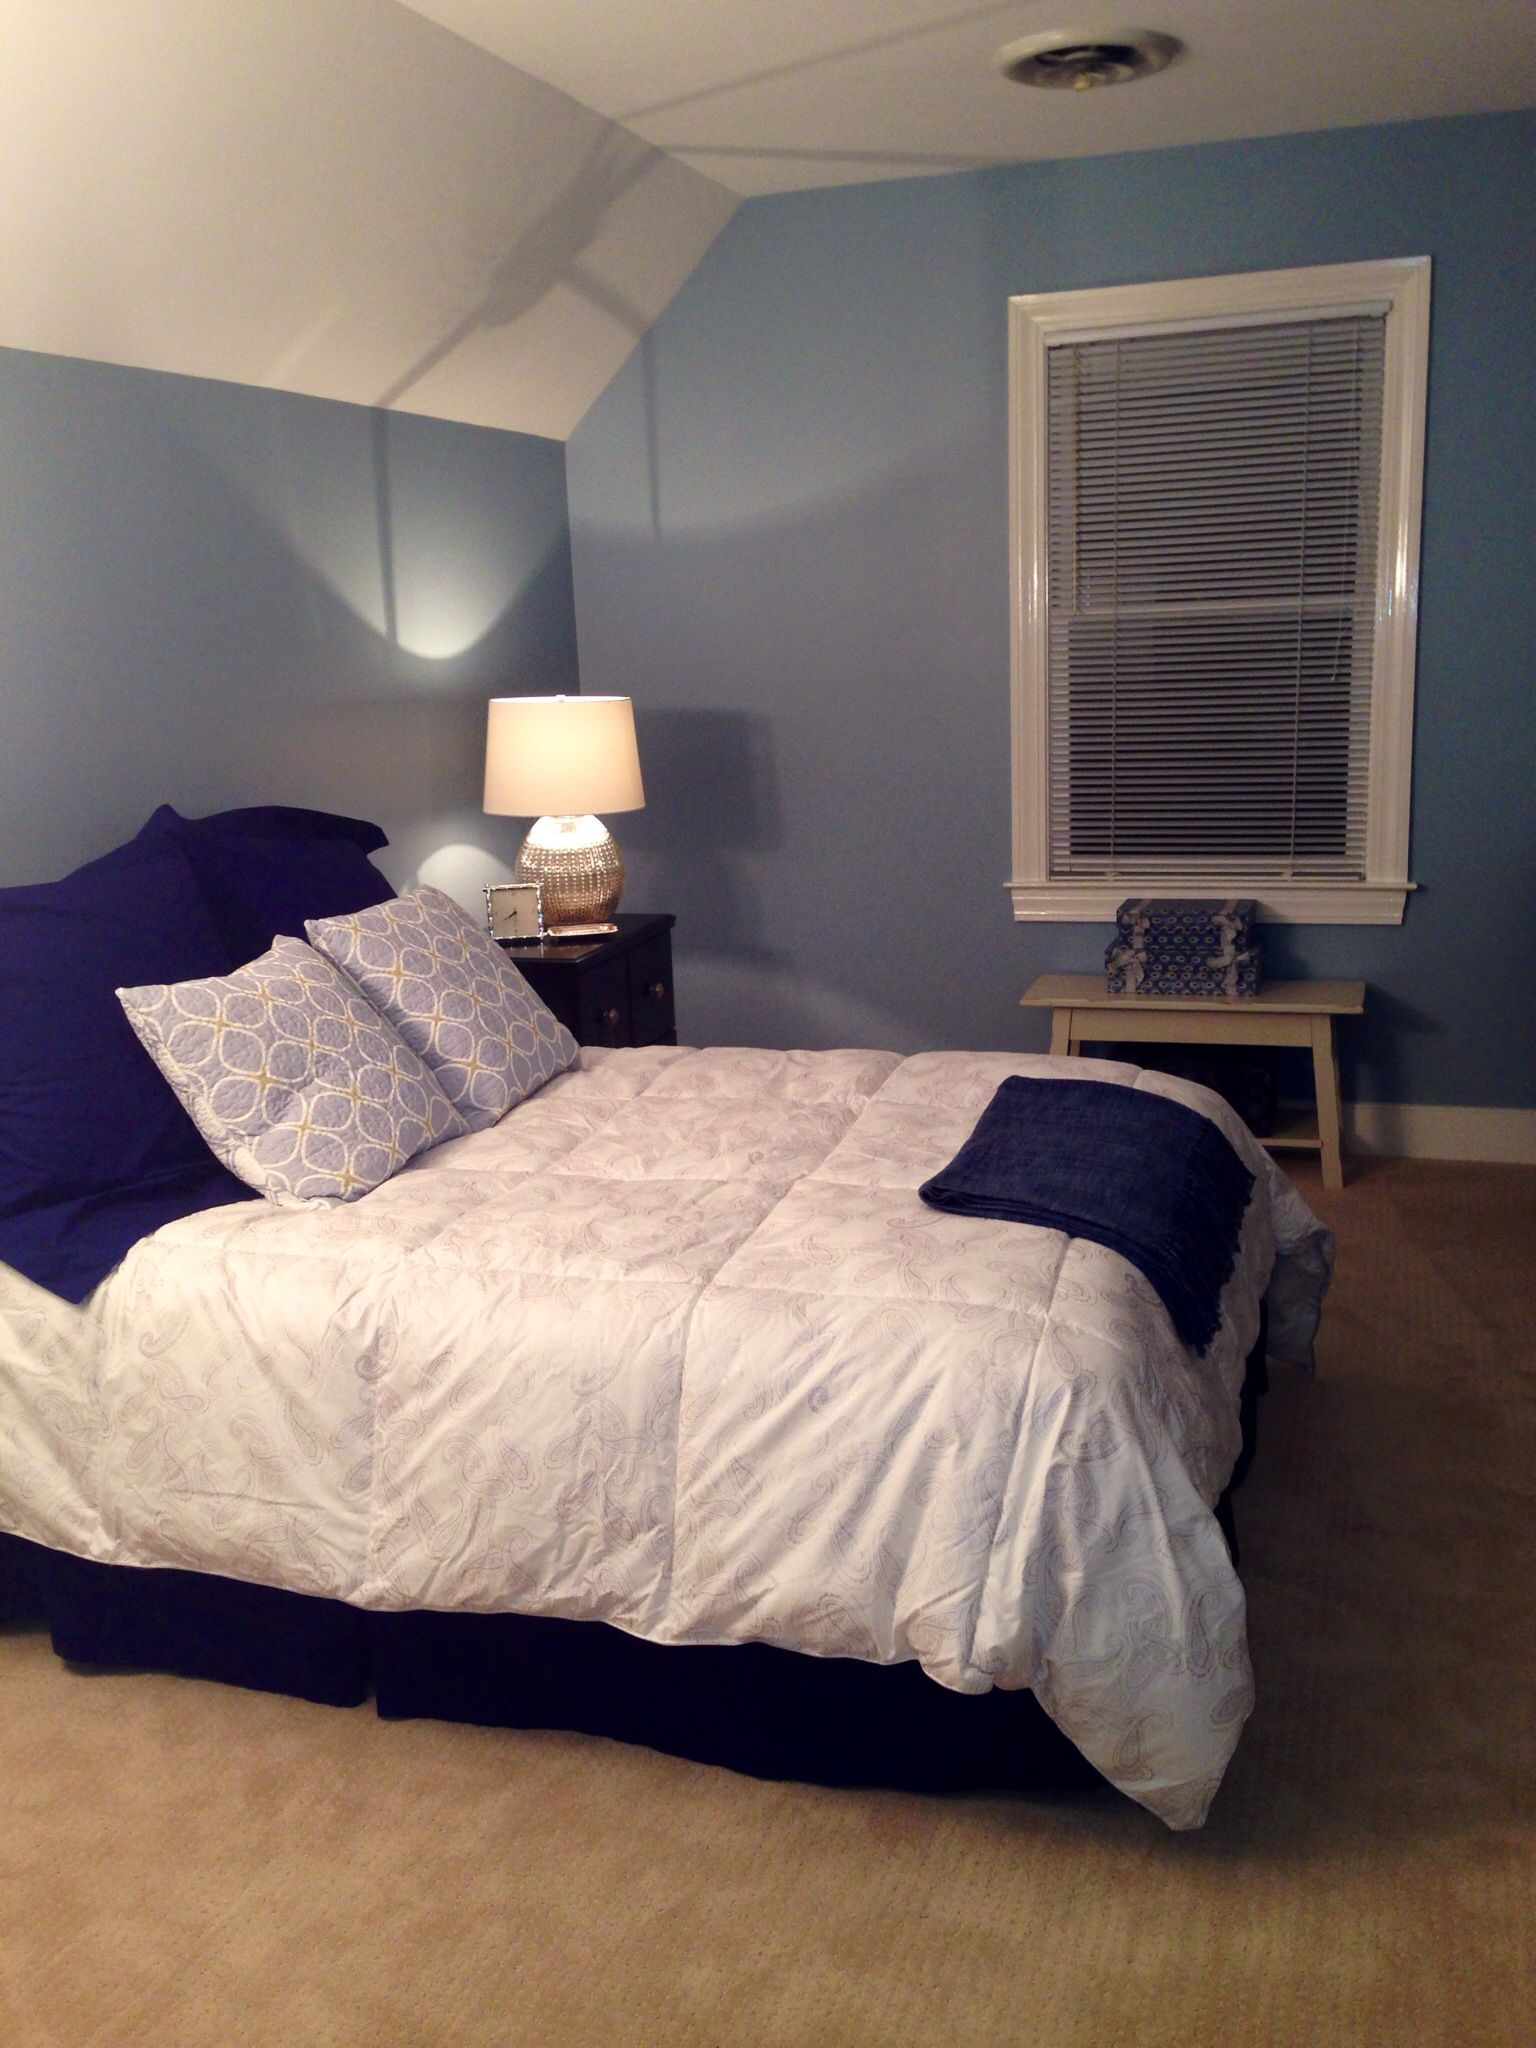 Blue Bedroom Furniture: Guest Bedroom Redo SW Dockside Blue On Walls. Black